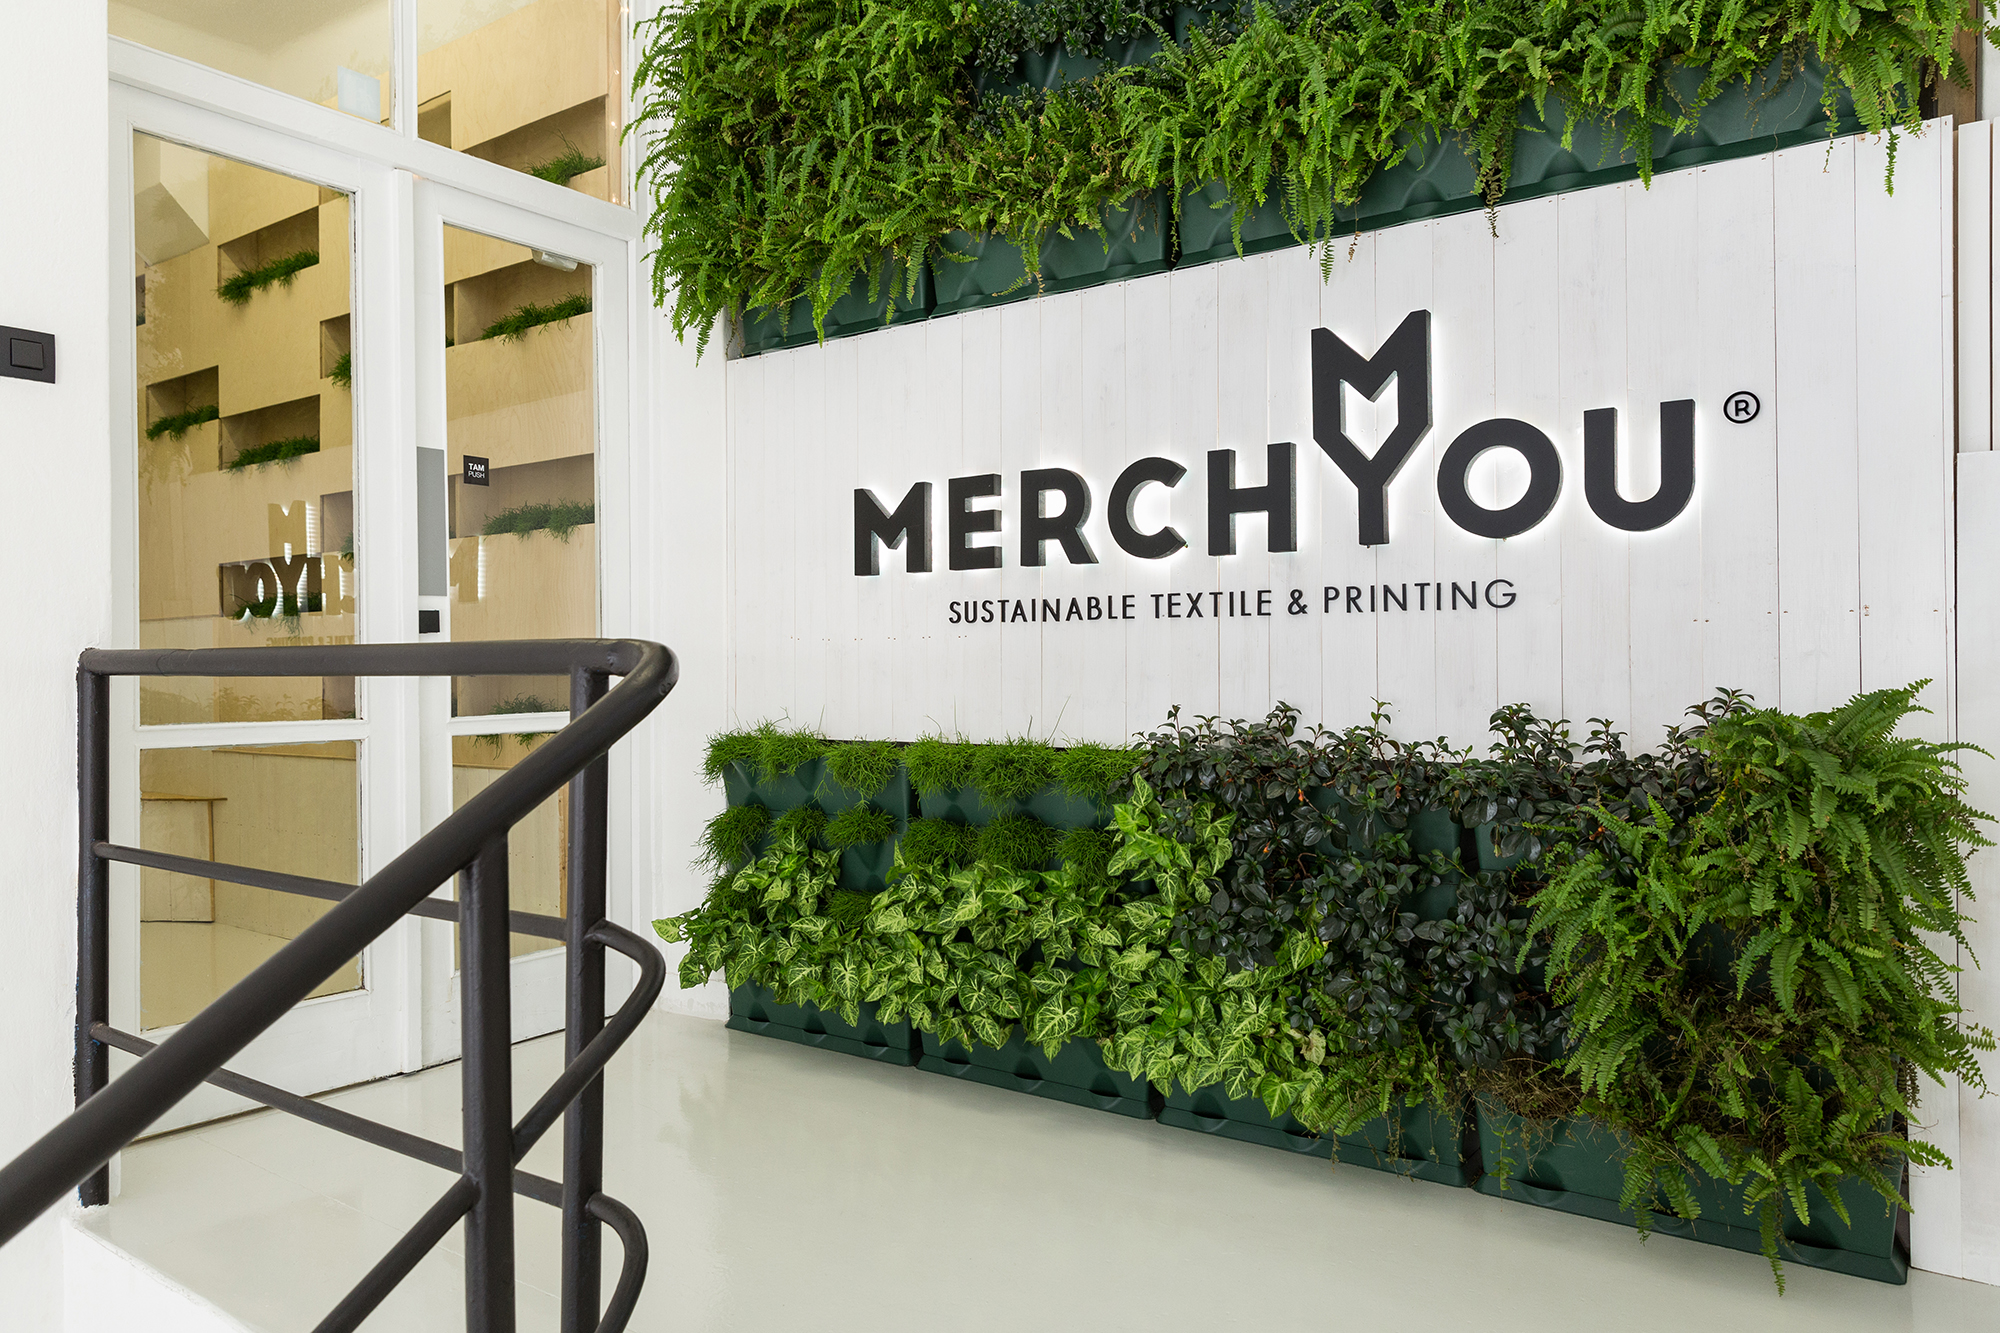 Sustainable textile, printing and embroidery | merchyou com